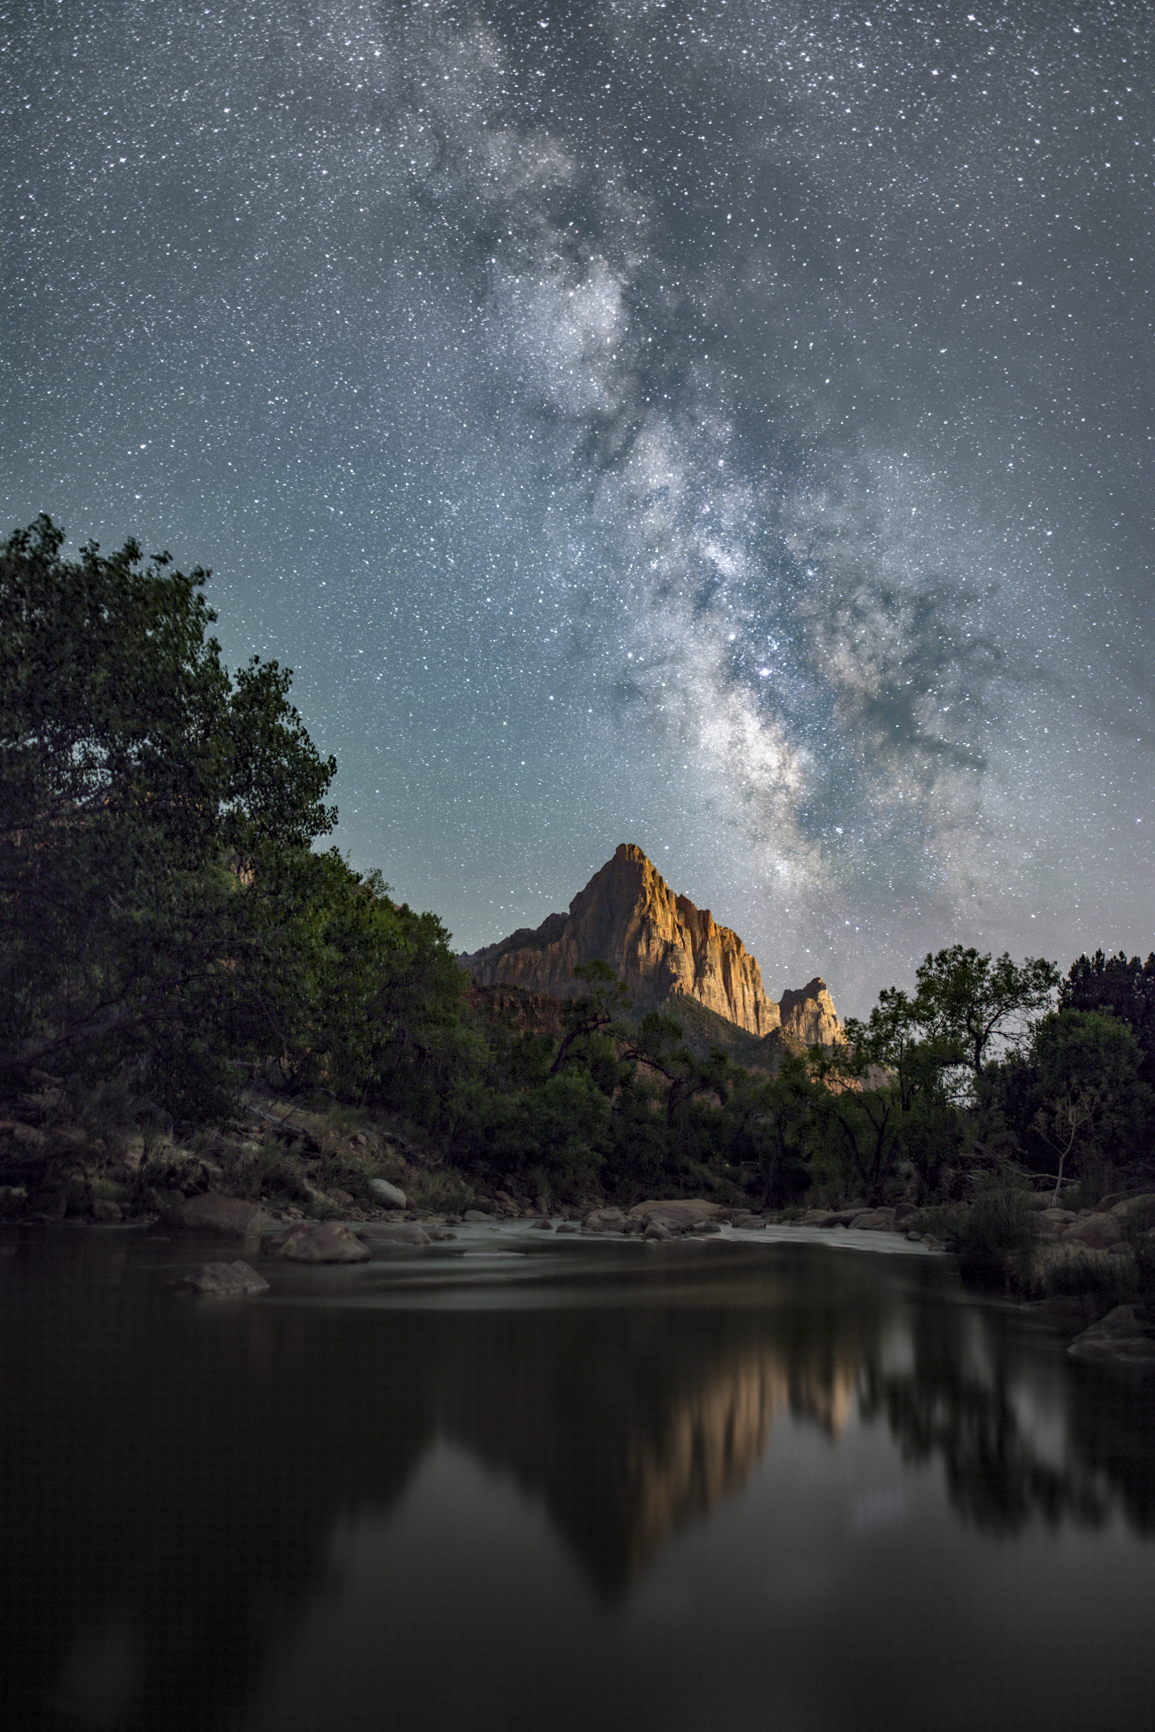 Watchman of Zion with Milky Way and Reflection